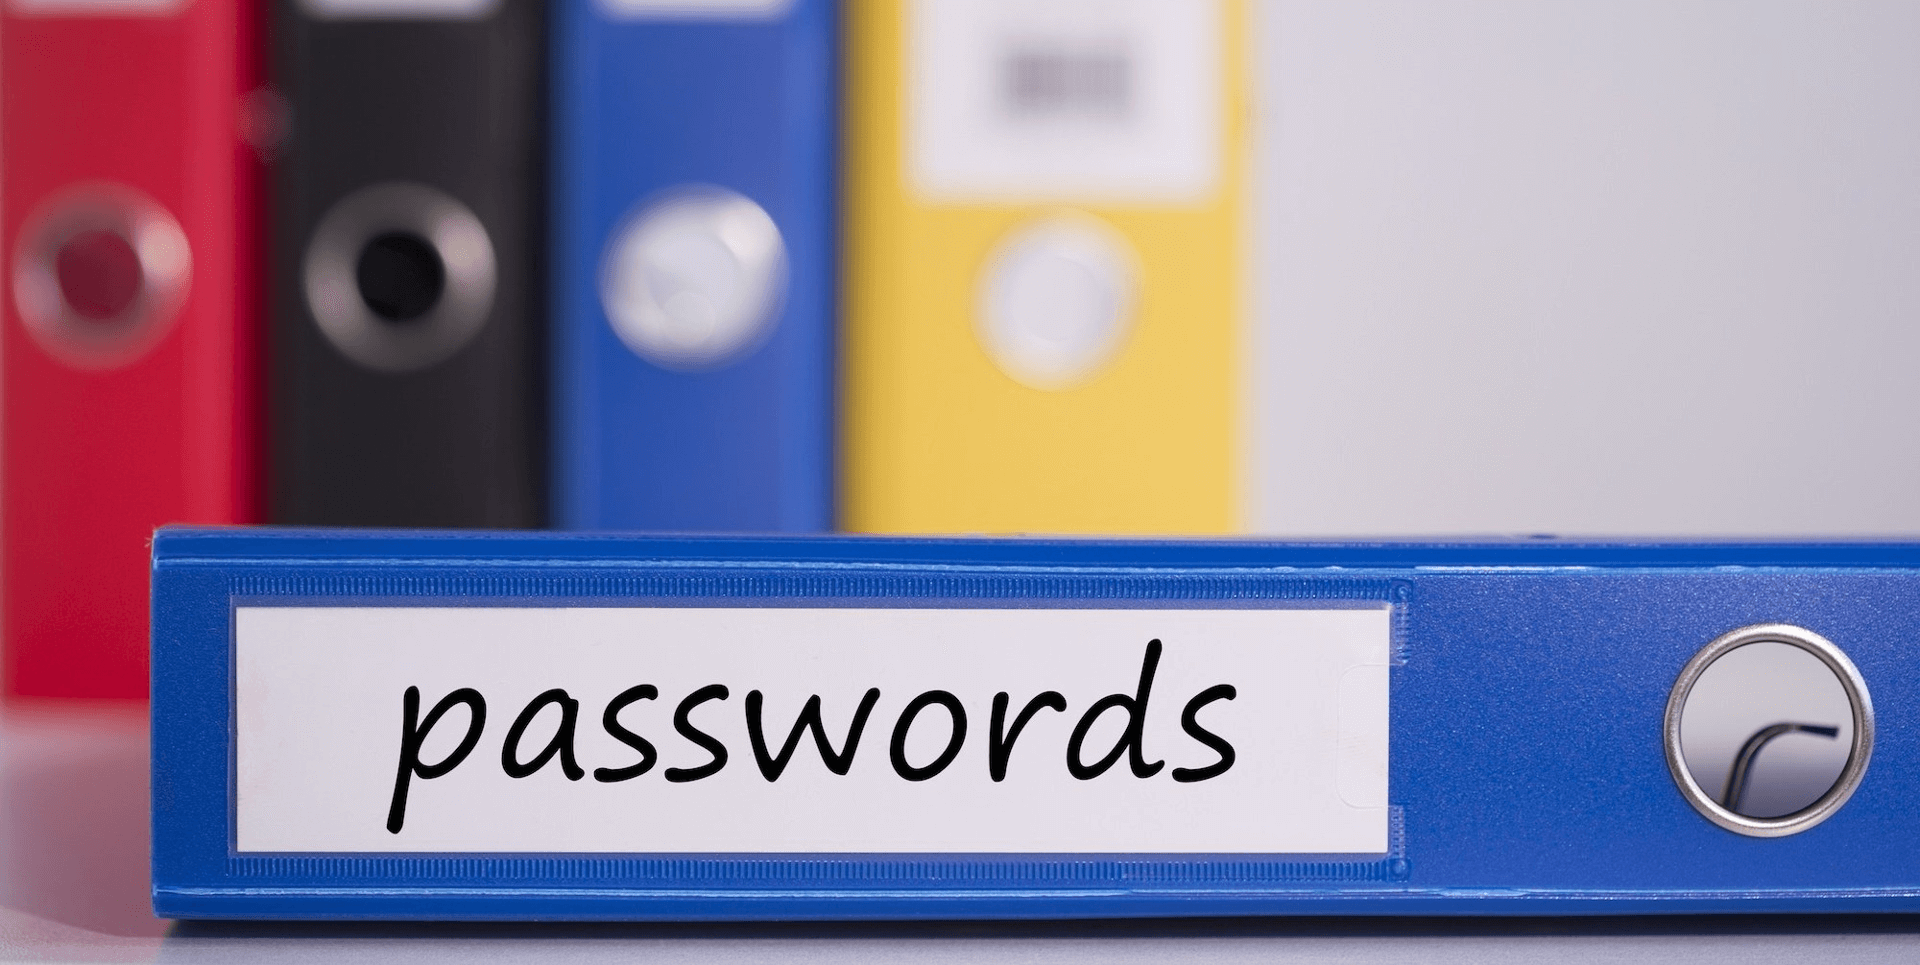 Our Top Pick for Password Management